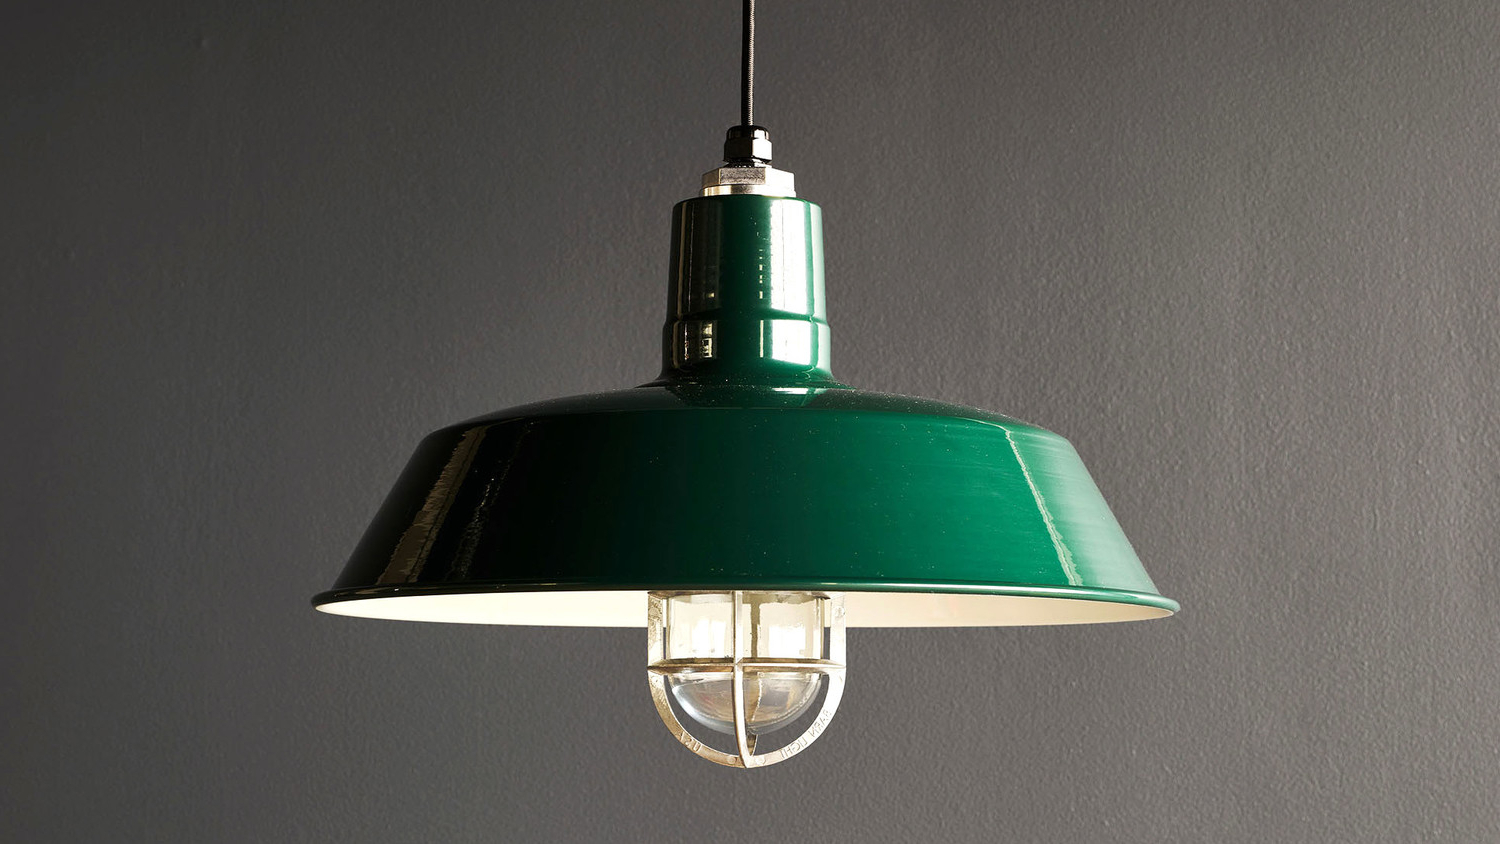 Amazing Deal On Crume 5 Light Cluster Pendant Williston Forge Within 2020 Schutt 5 Light Cluster Pendants (View 3 of 25)